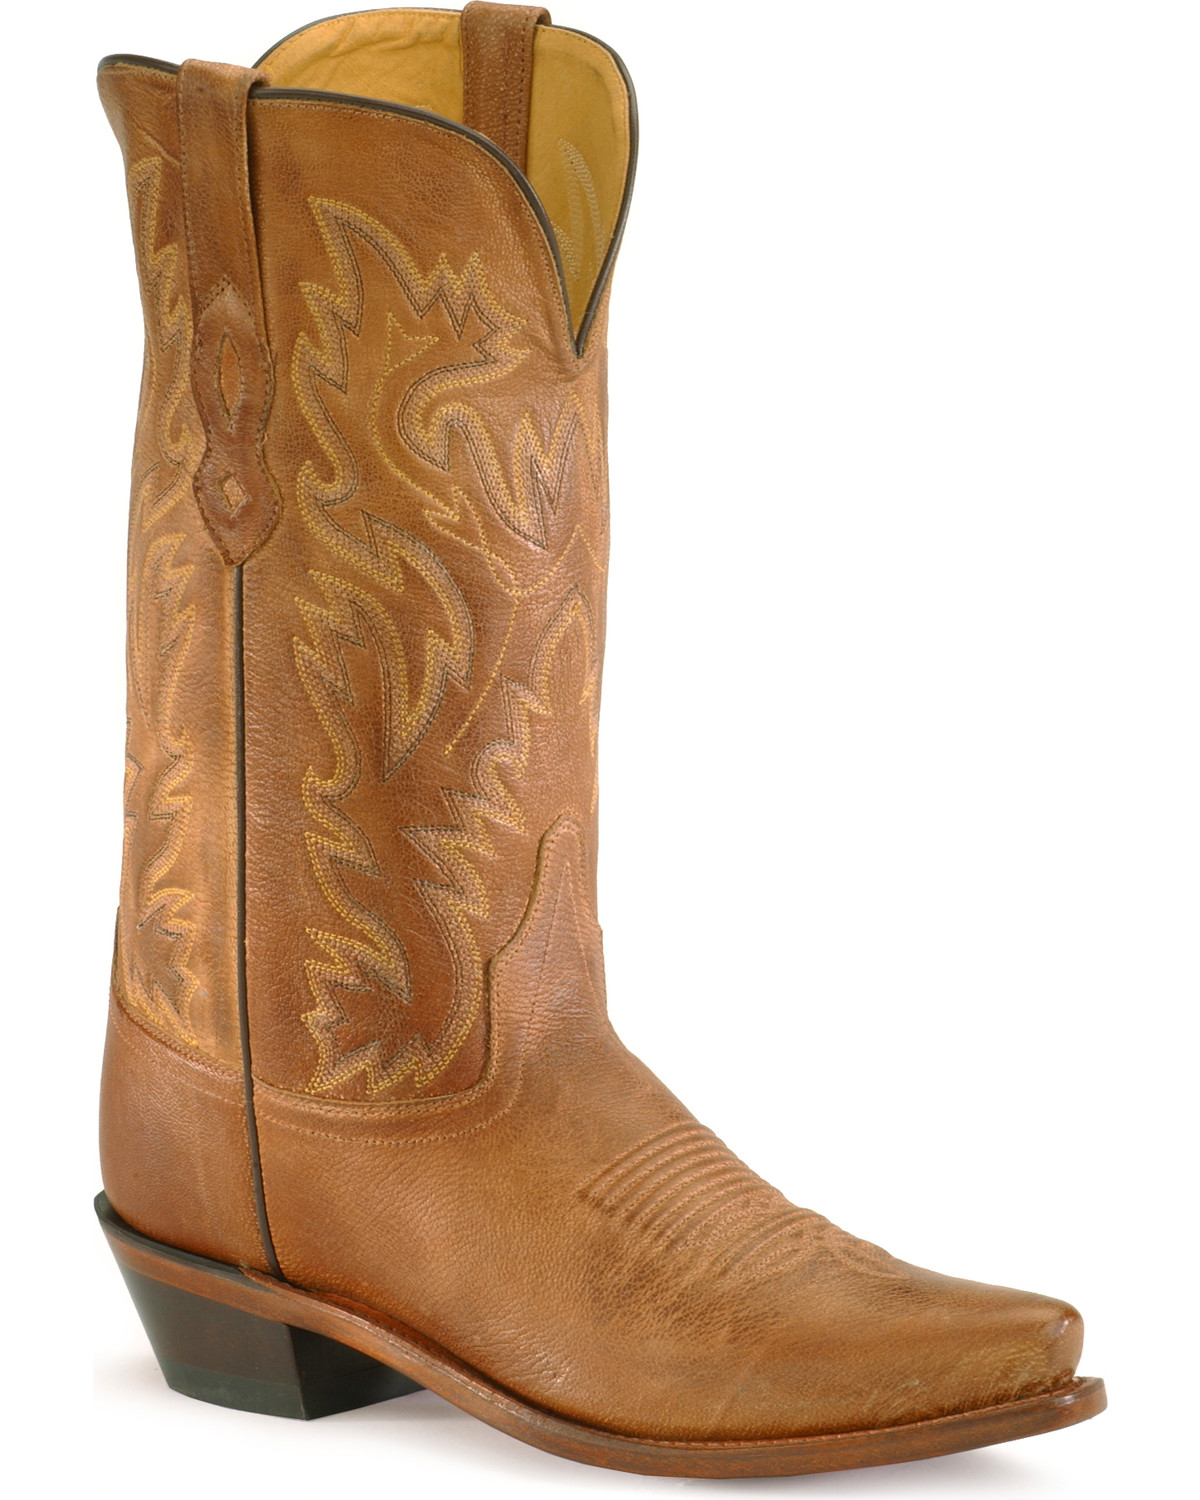 Old West Contemporary Cowboy Boots - Country Outfitter